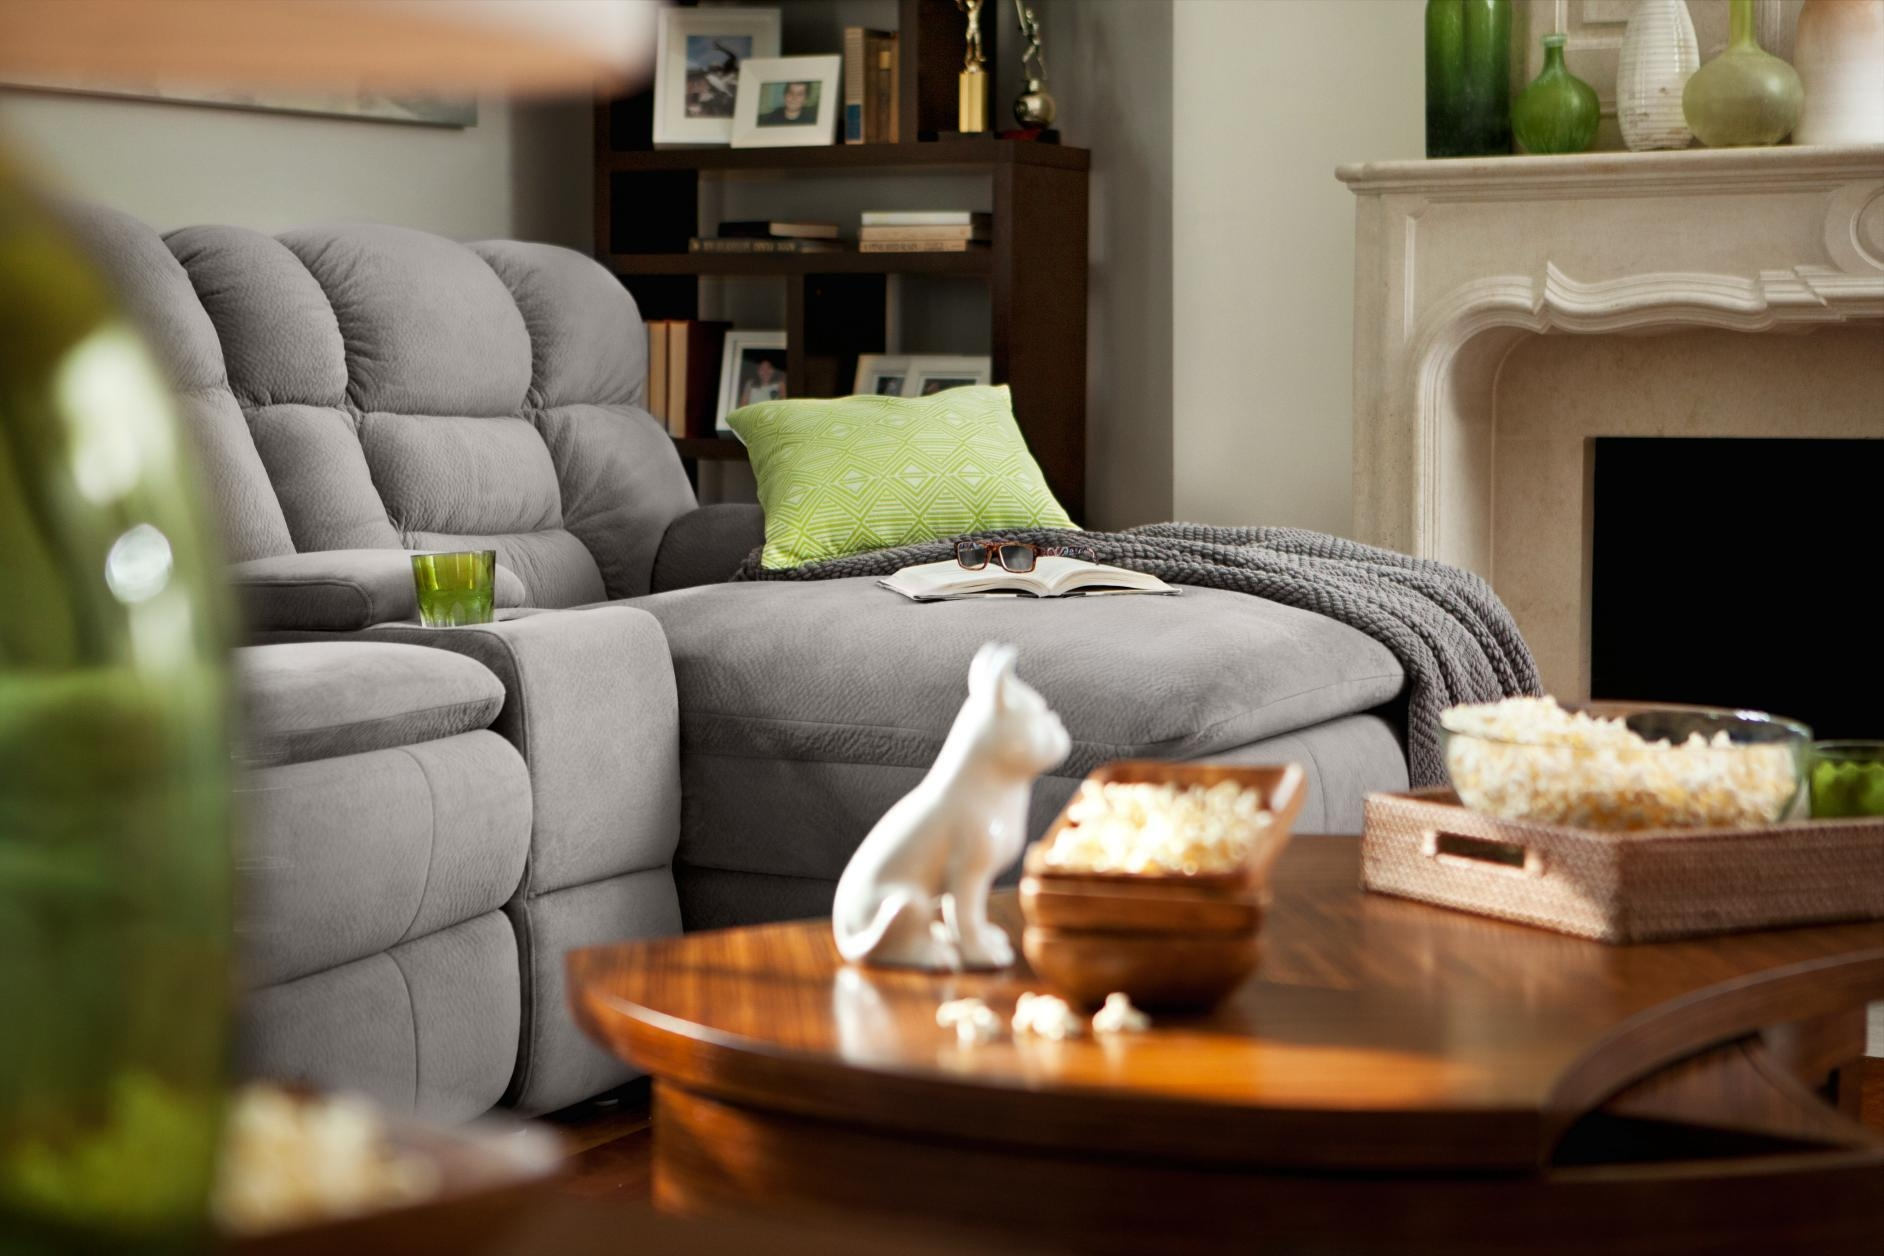 The Best Big Comfy Couches | Value City Furniture For Big Comfy Sofas (View 5 of 25)